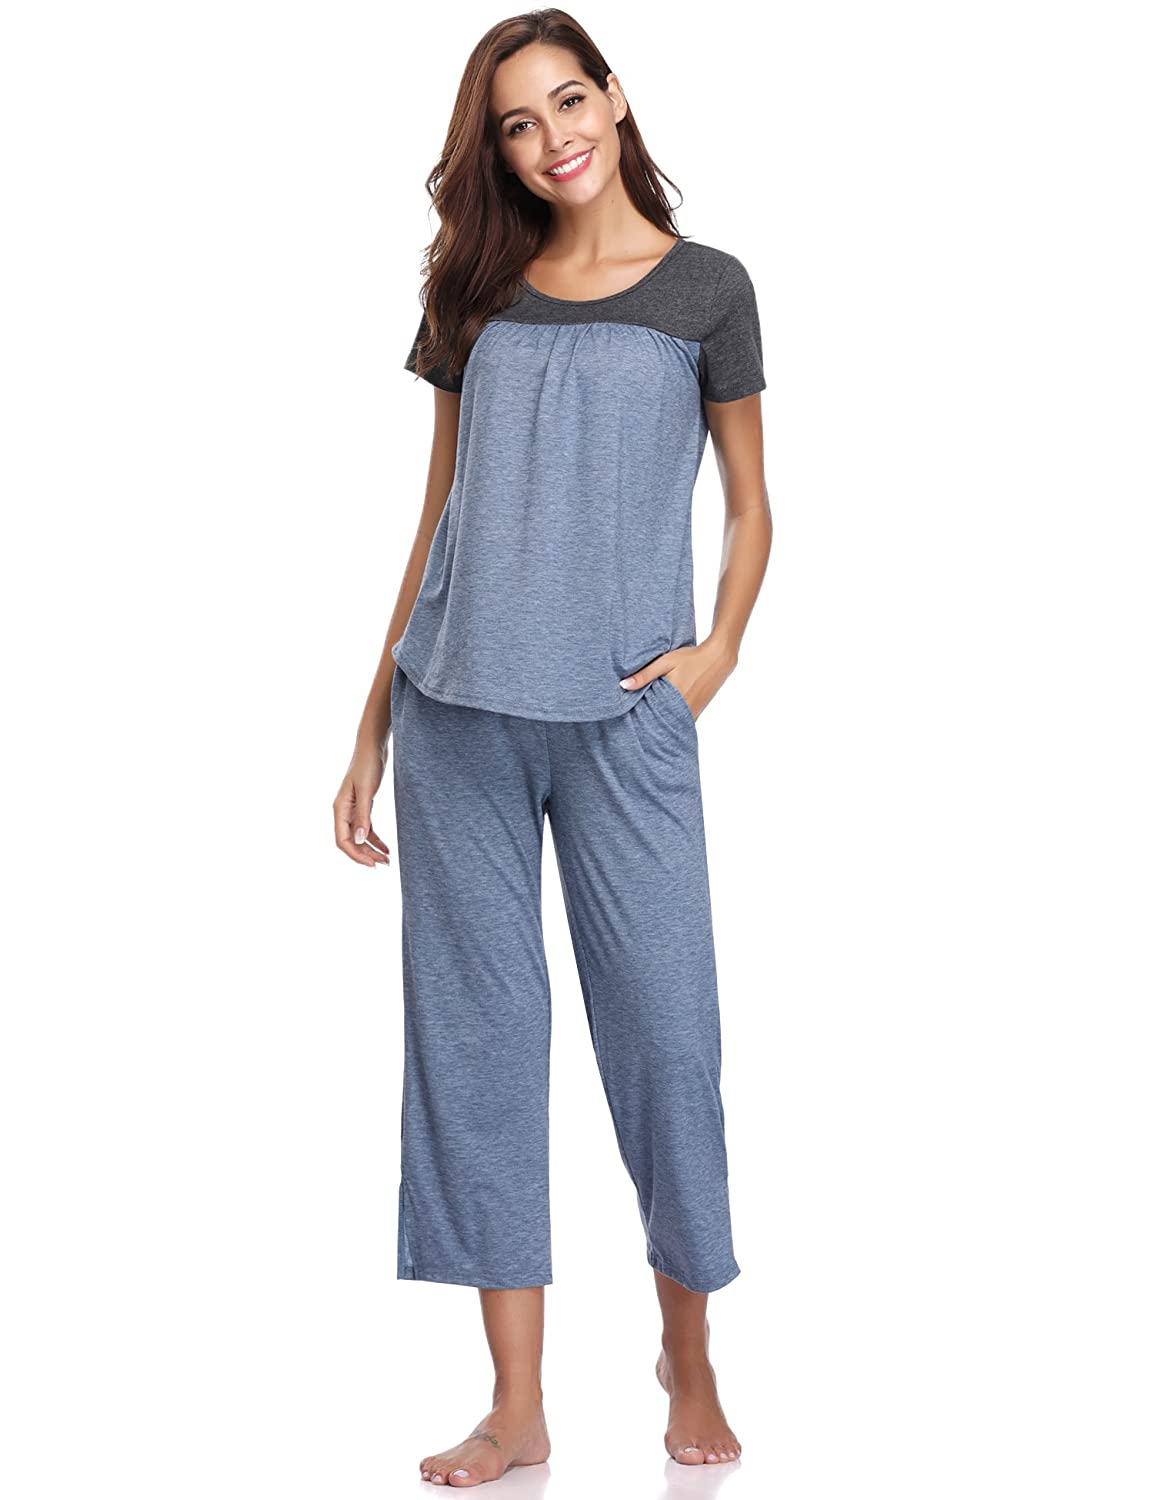 Aibrou Ladies Cotton Pyjamas Set, Short Sleeve Top T-Shirt & Cropped Pants Bottom, Loose Sleepwear Nightwear PJS